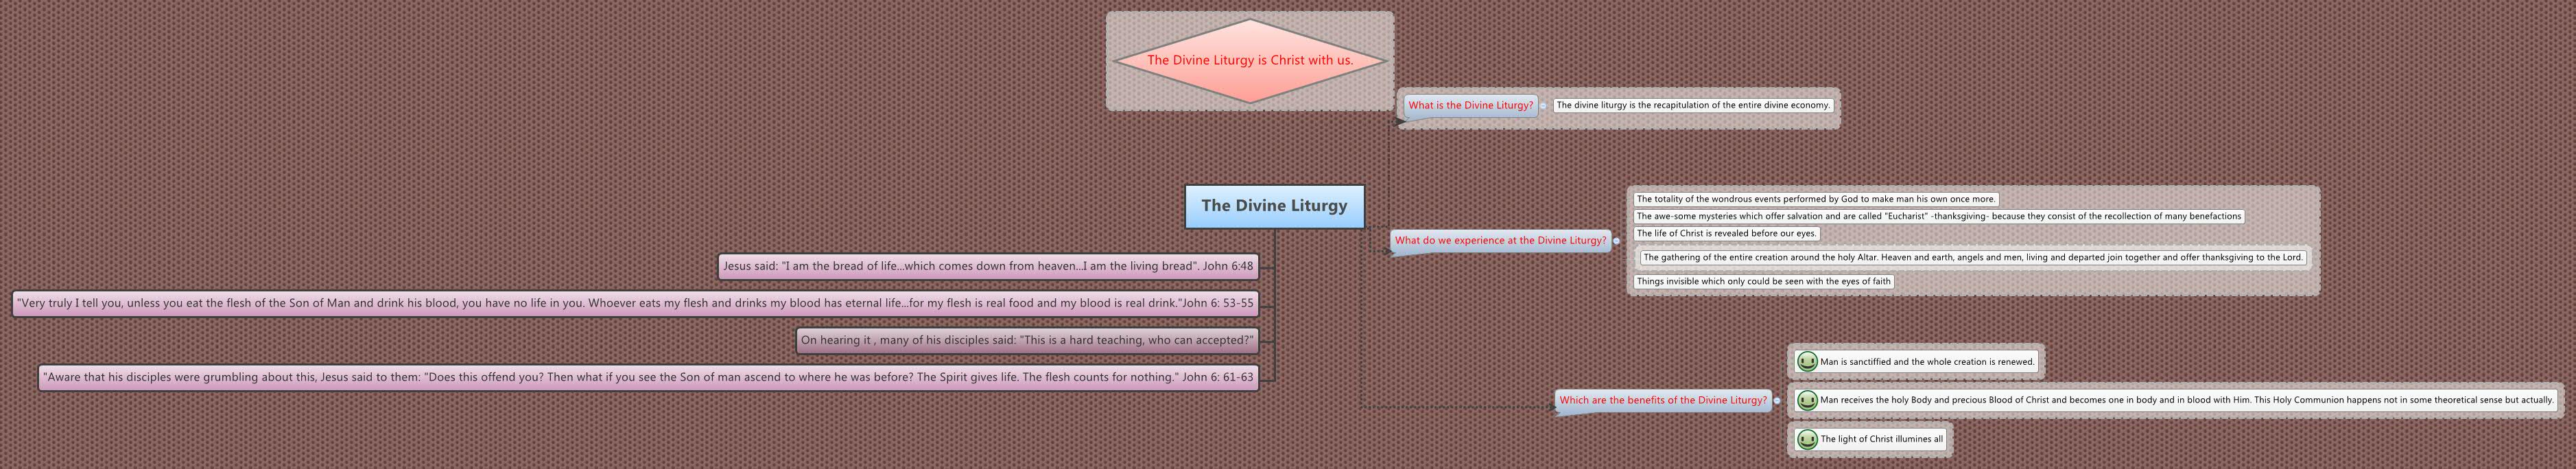 The Divine Liturgy - XMind - Mind Mapping Software